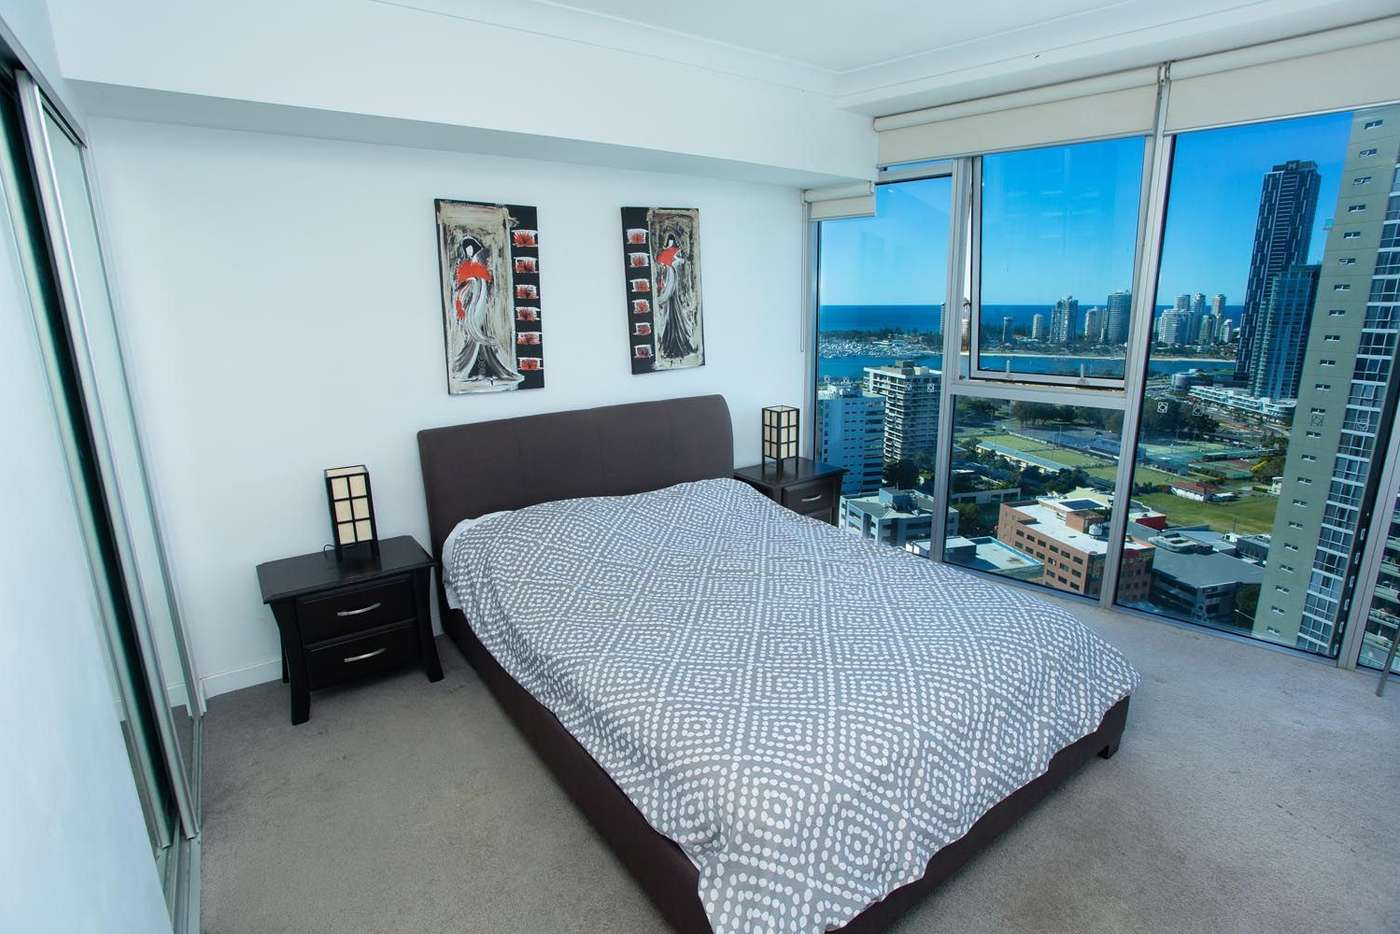 Sixth view of Homely apartment listing, 22202/5 Lawson Street, Southport QLD 4215